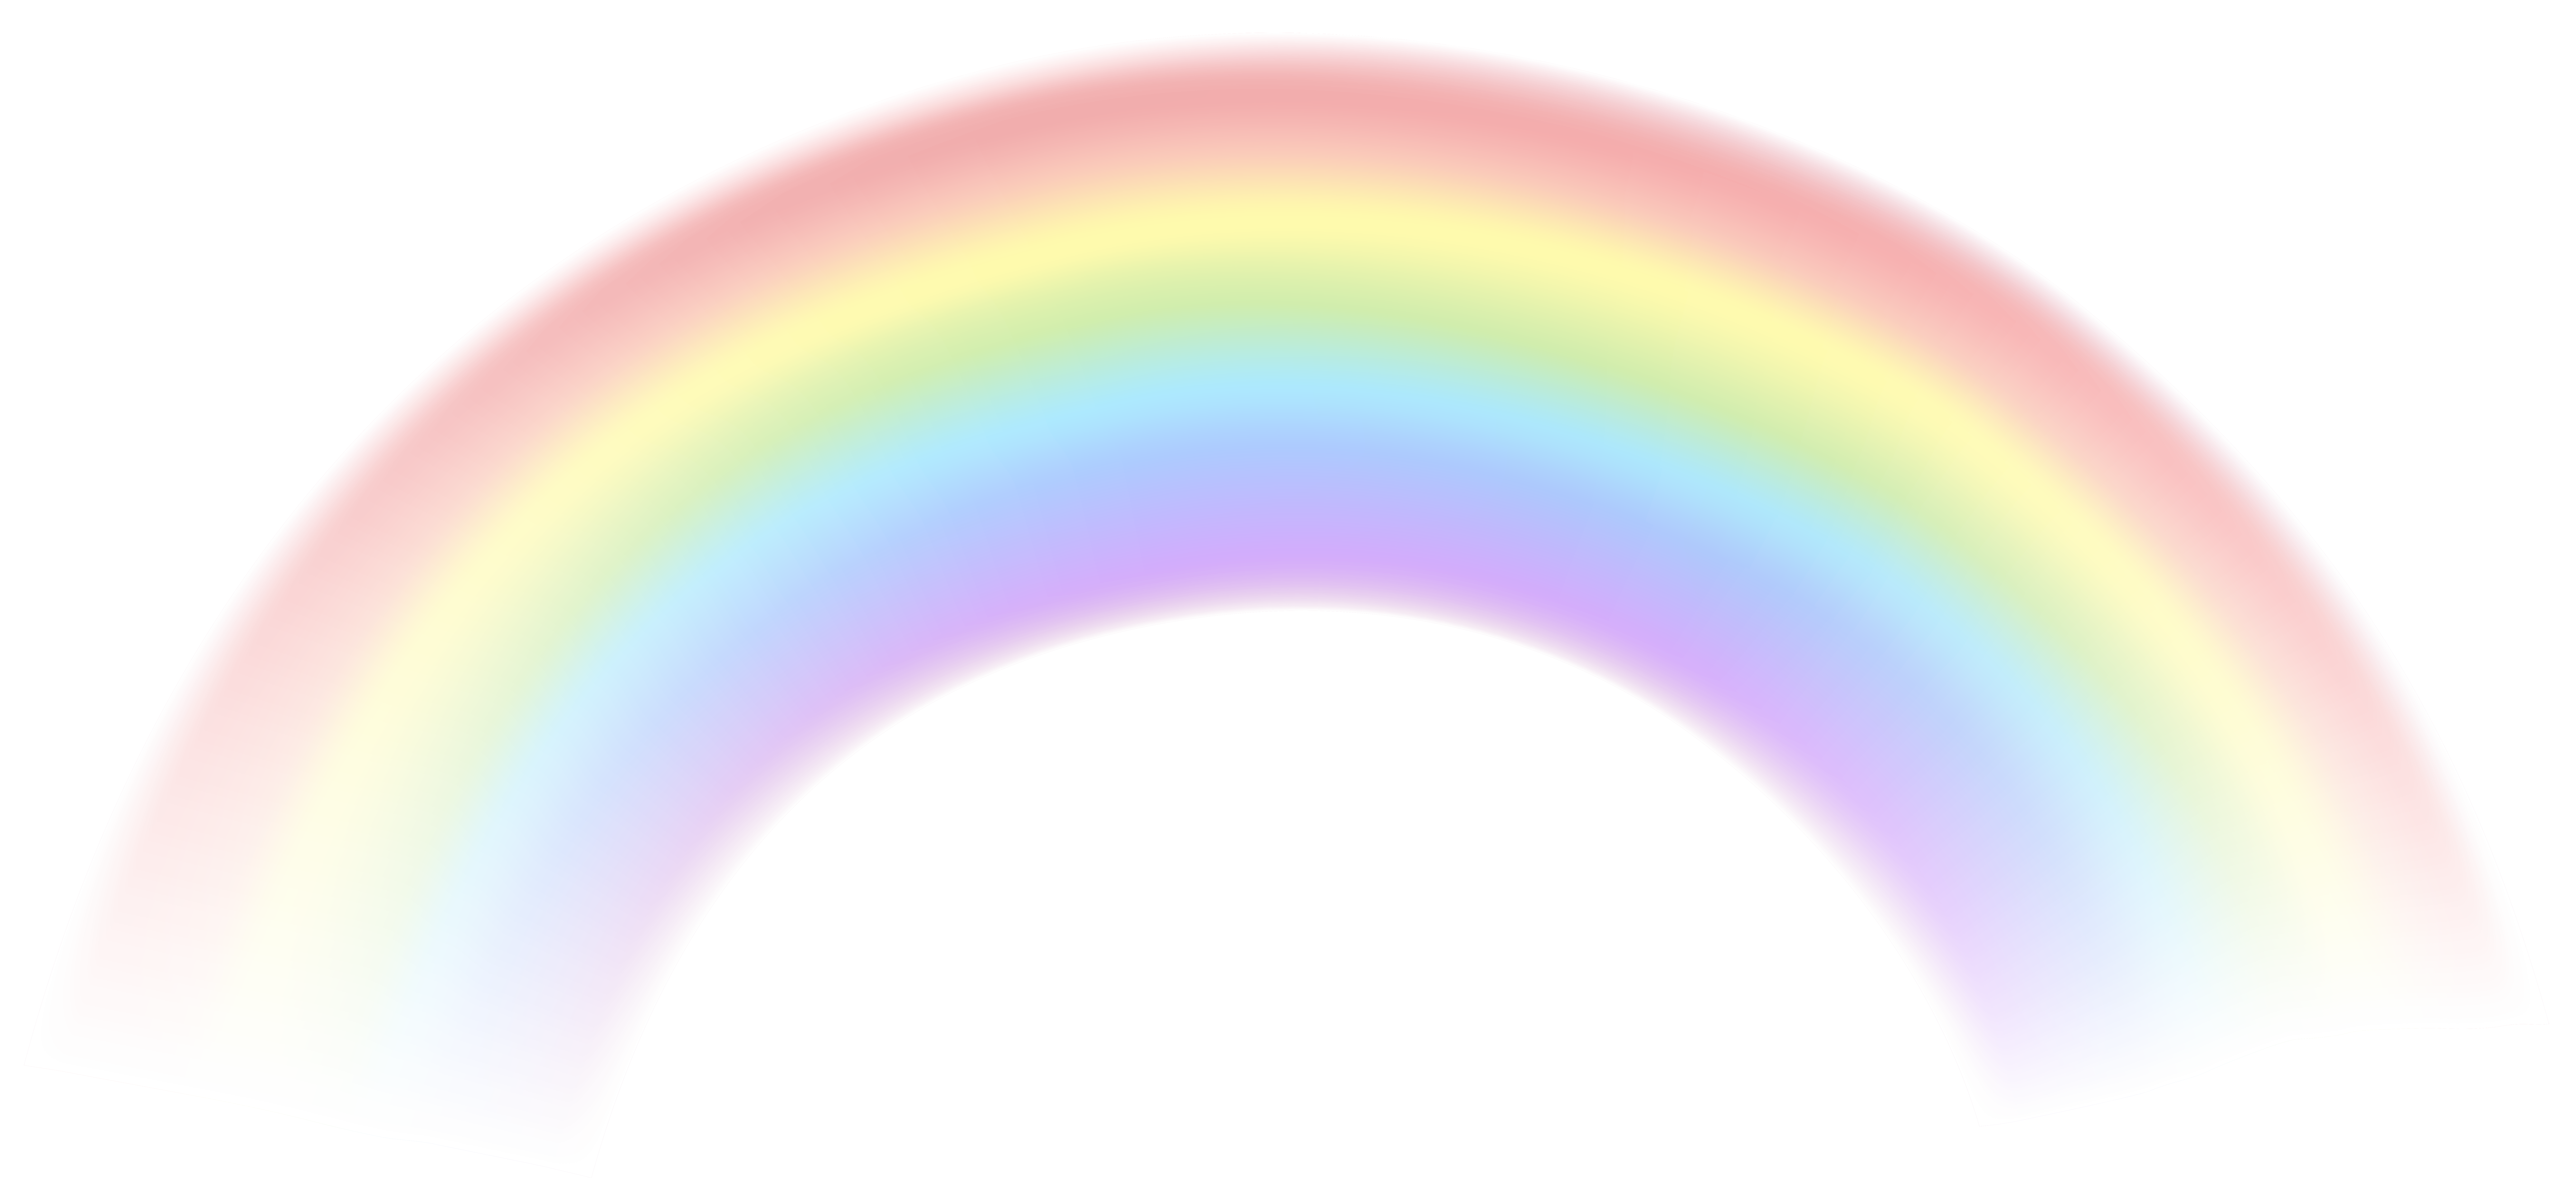 Rainbow overlay png. Transparent clip art image